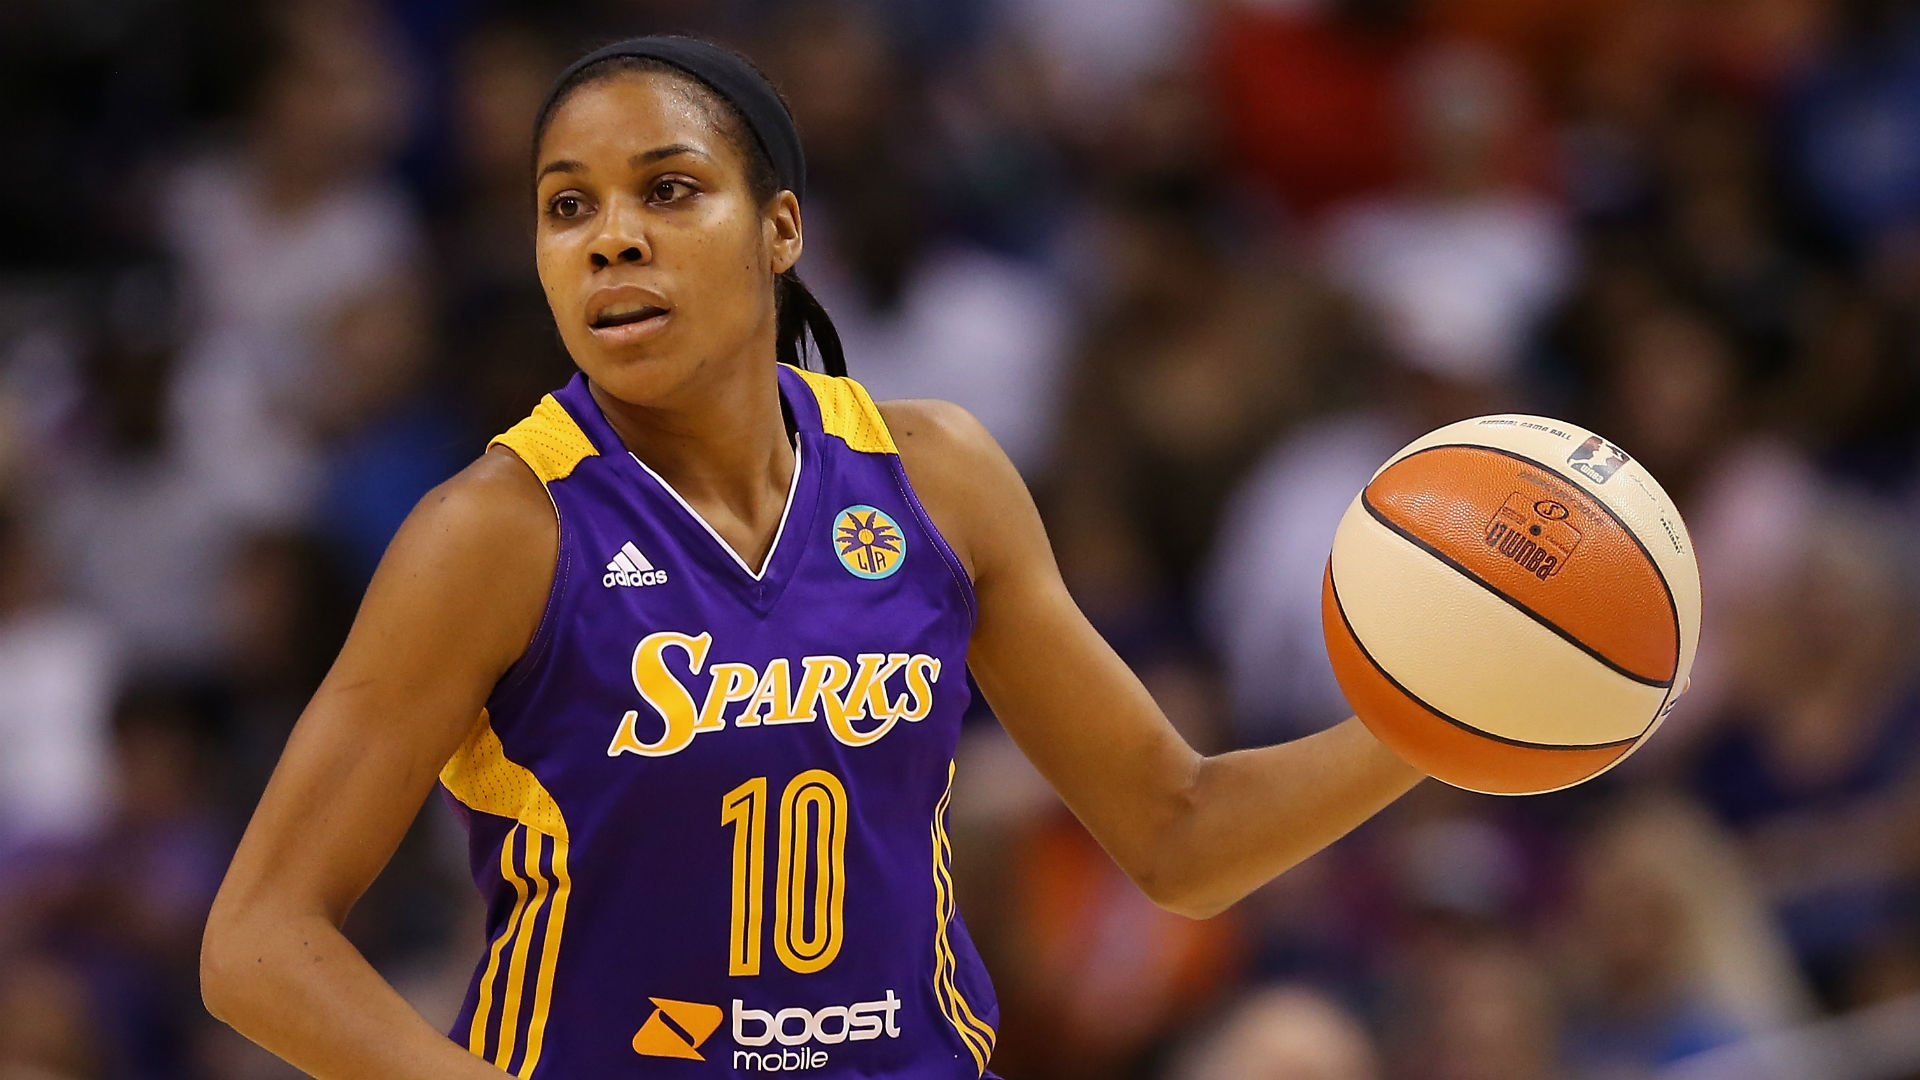 Kings hire former WNBA star Lindsey Harding as assistant coach